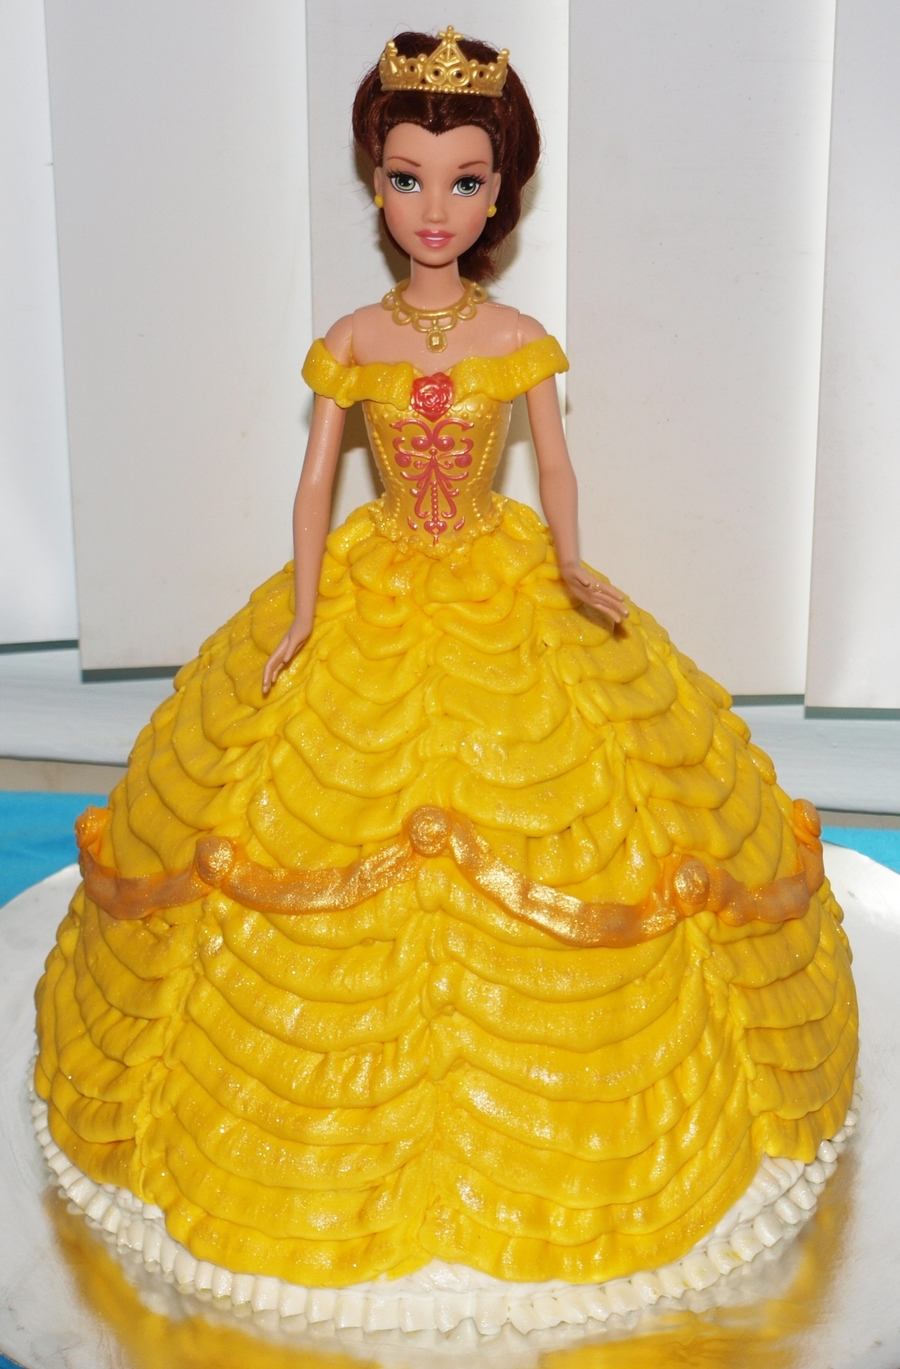 Belle Doll Cake Pictures